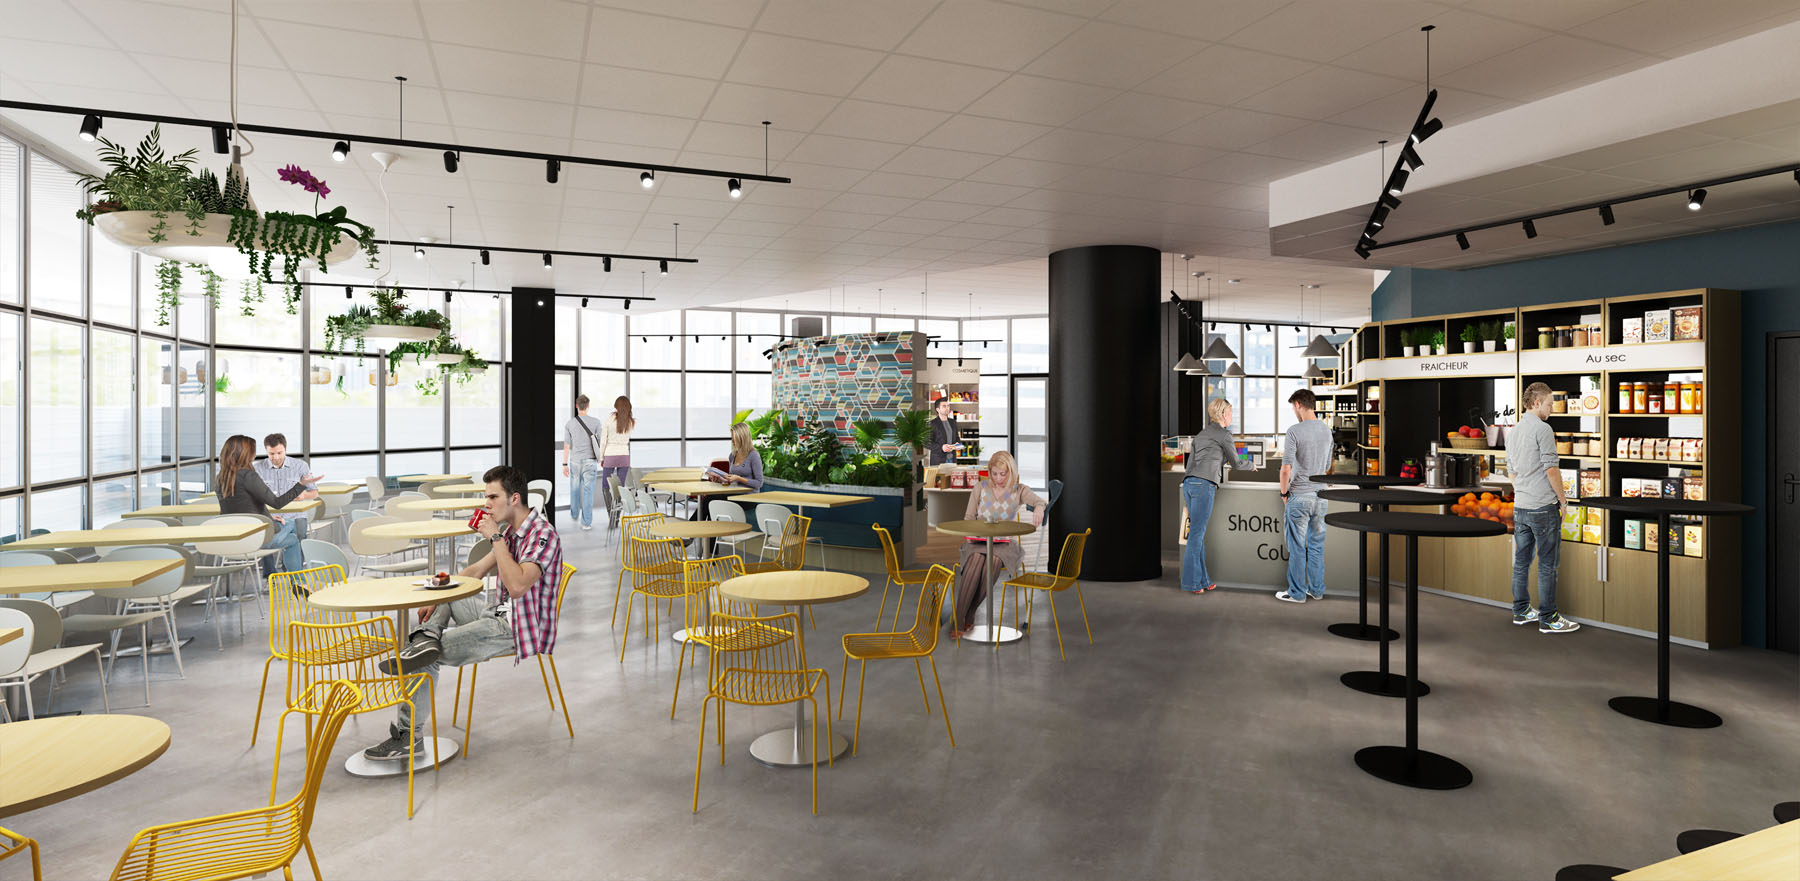 3D Rendering for a cafeteria and shop